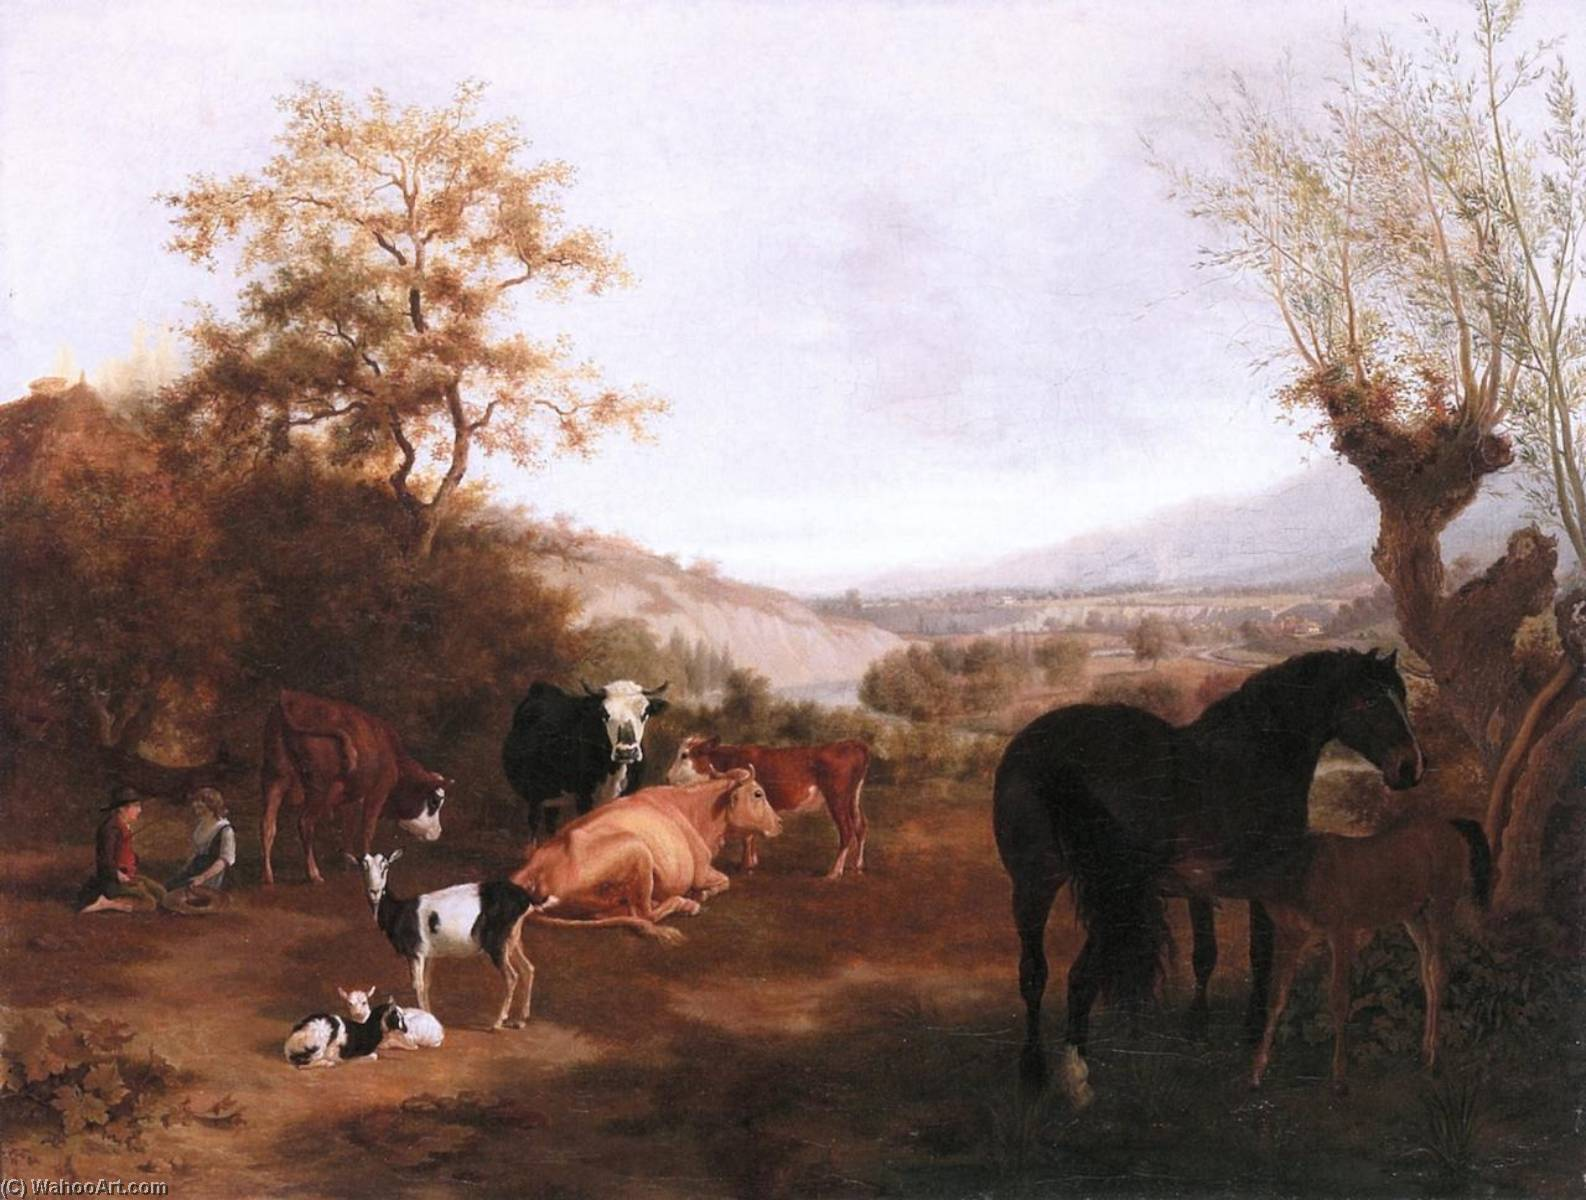 Geneva Landscape with Horses and Cows, 1800 by Adam Töpffer (1766-1847) | Art Reproduction | ArtsDot.com